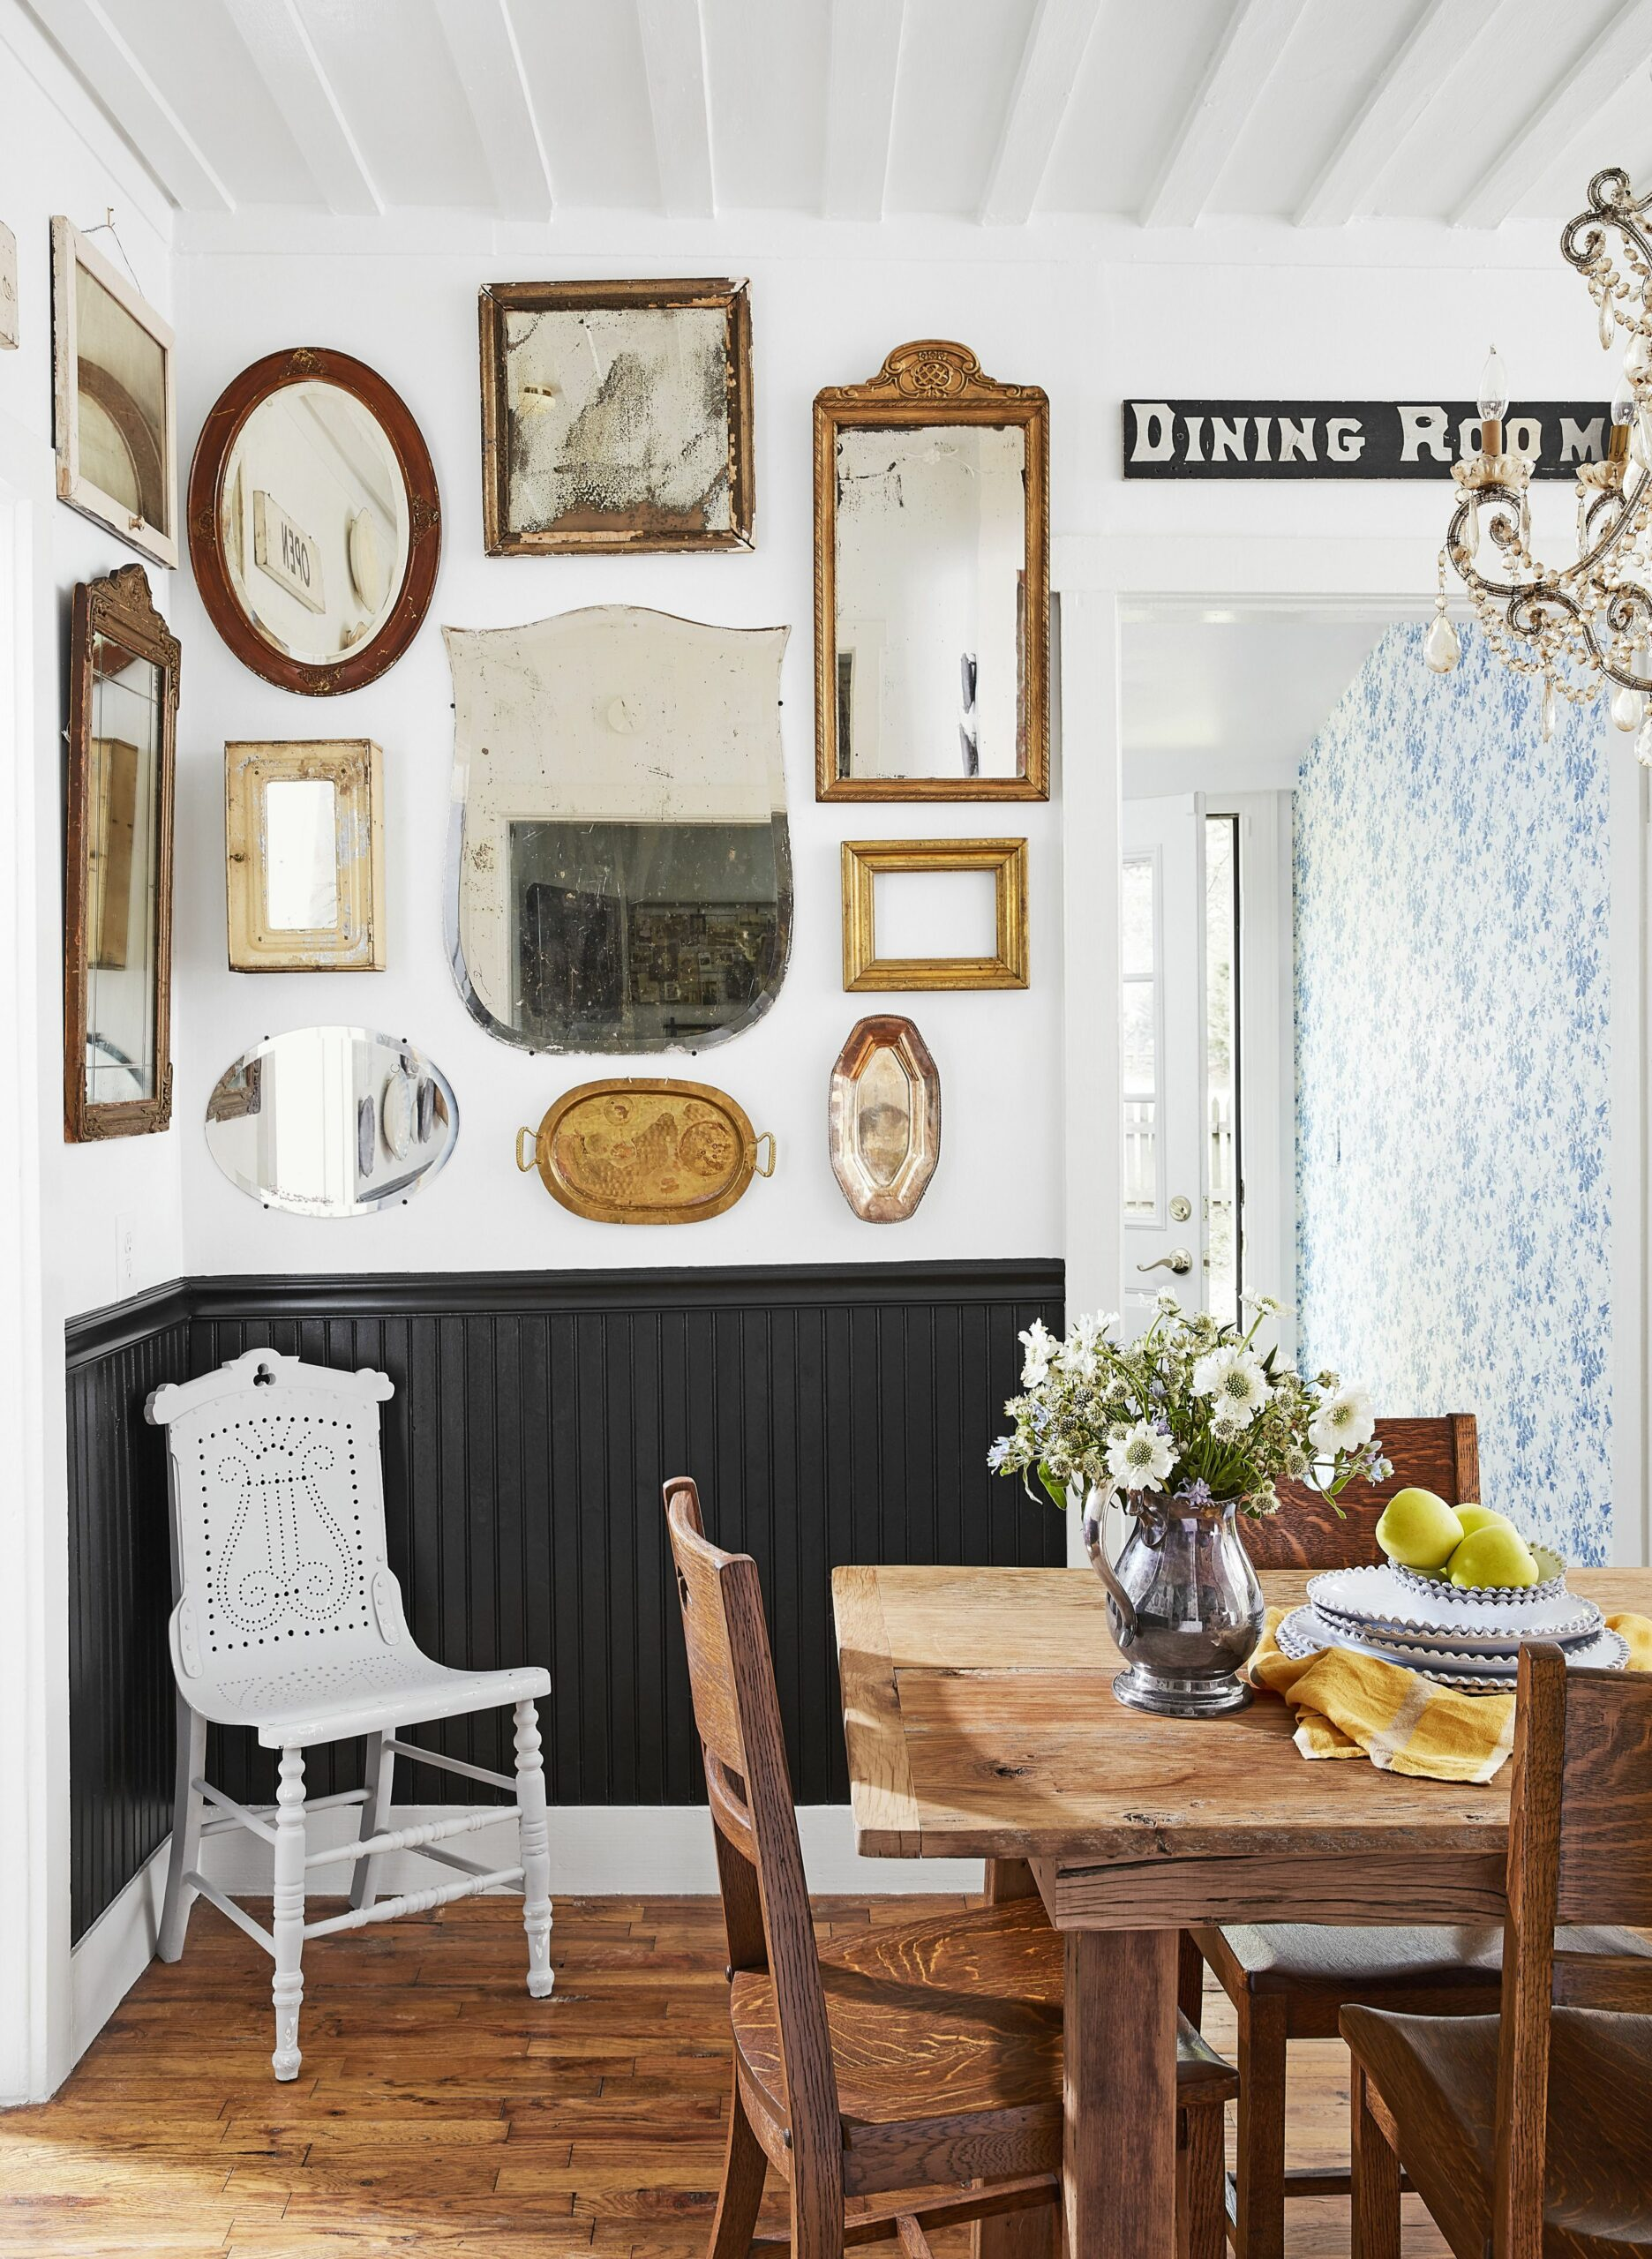 12 Best Dining Room Decorating Ideas - Pictures of Dining Room Decor